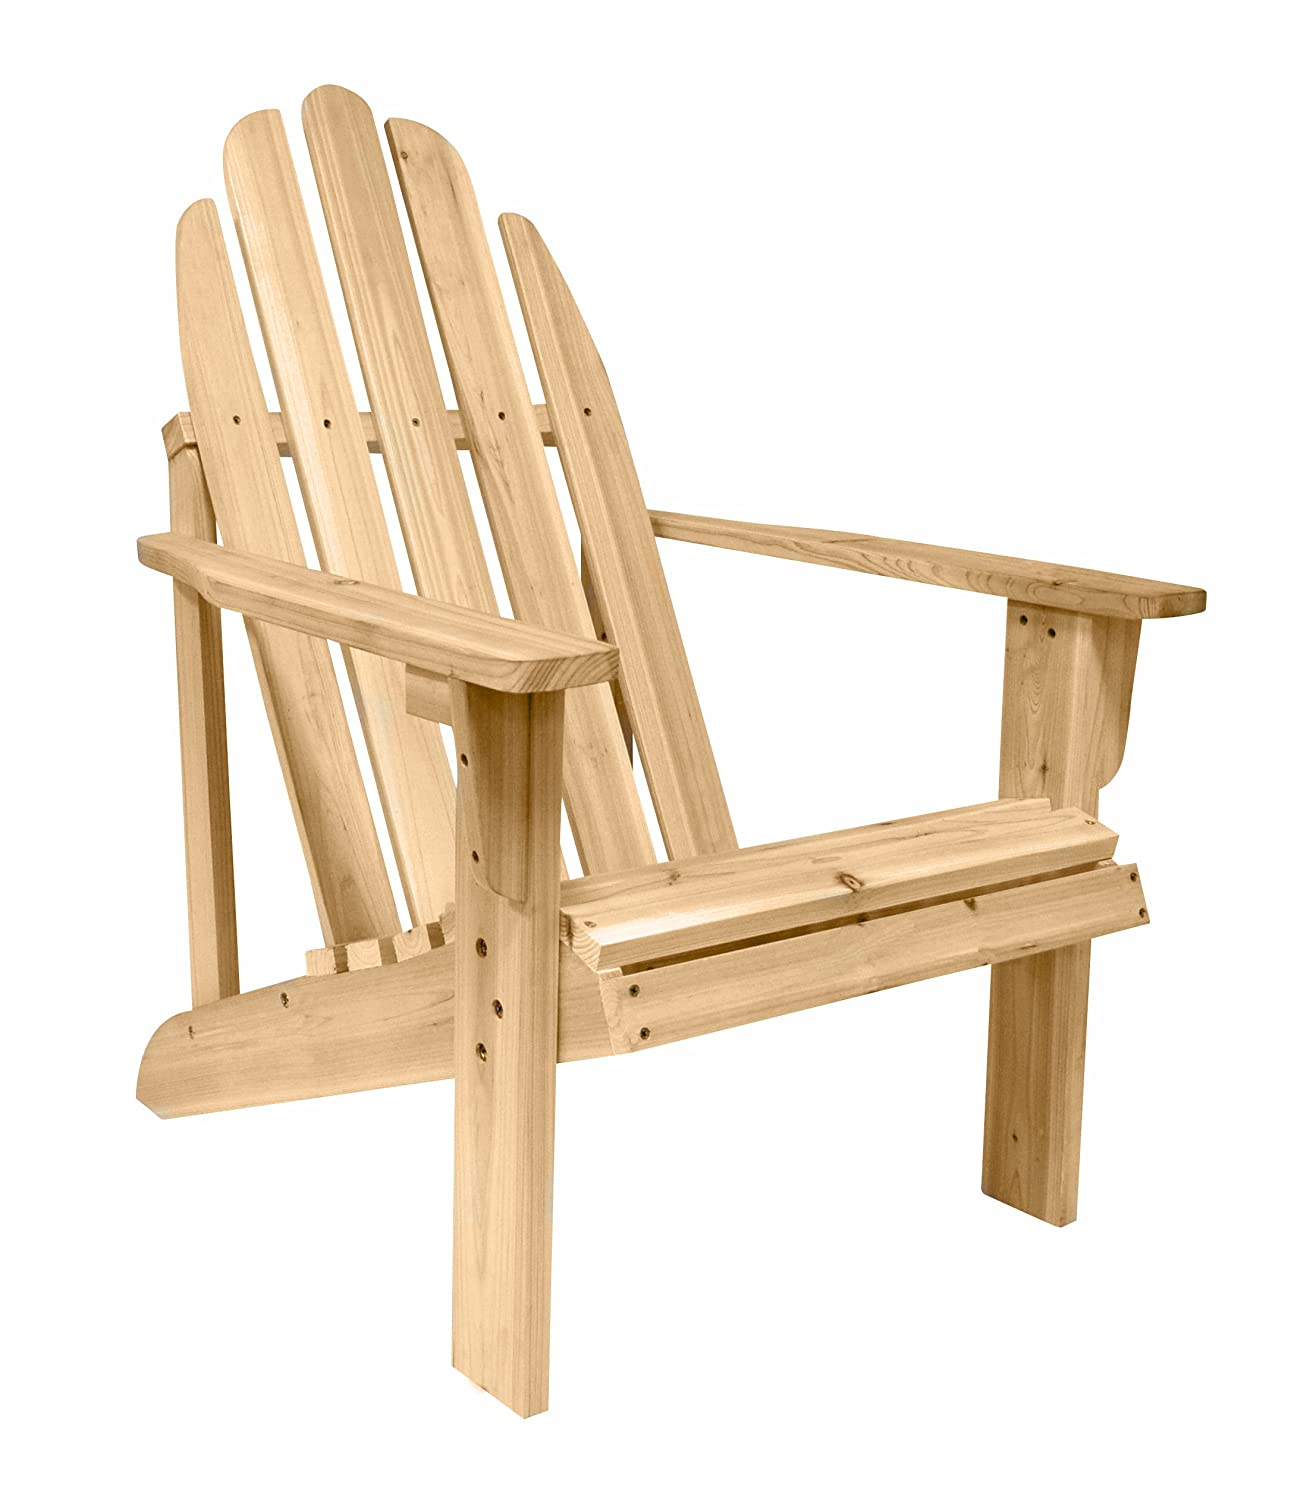 Amazon Shine pany Catalina Adirondack Chair Natural